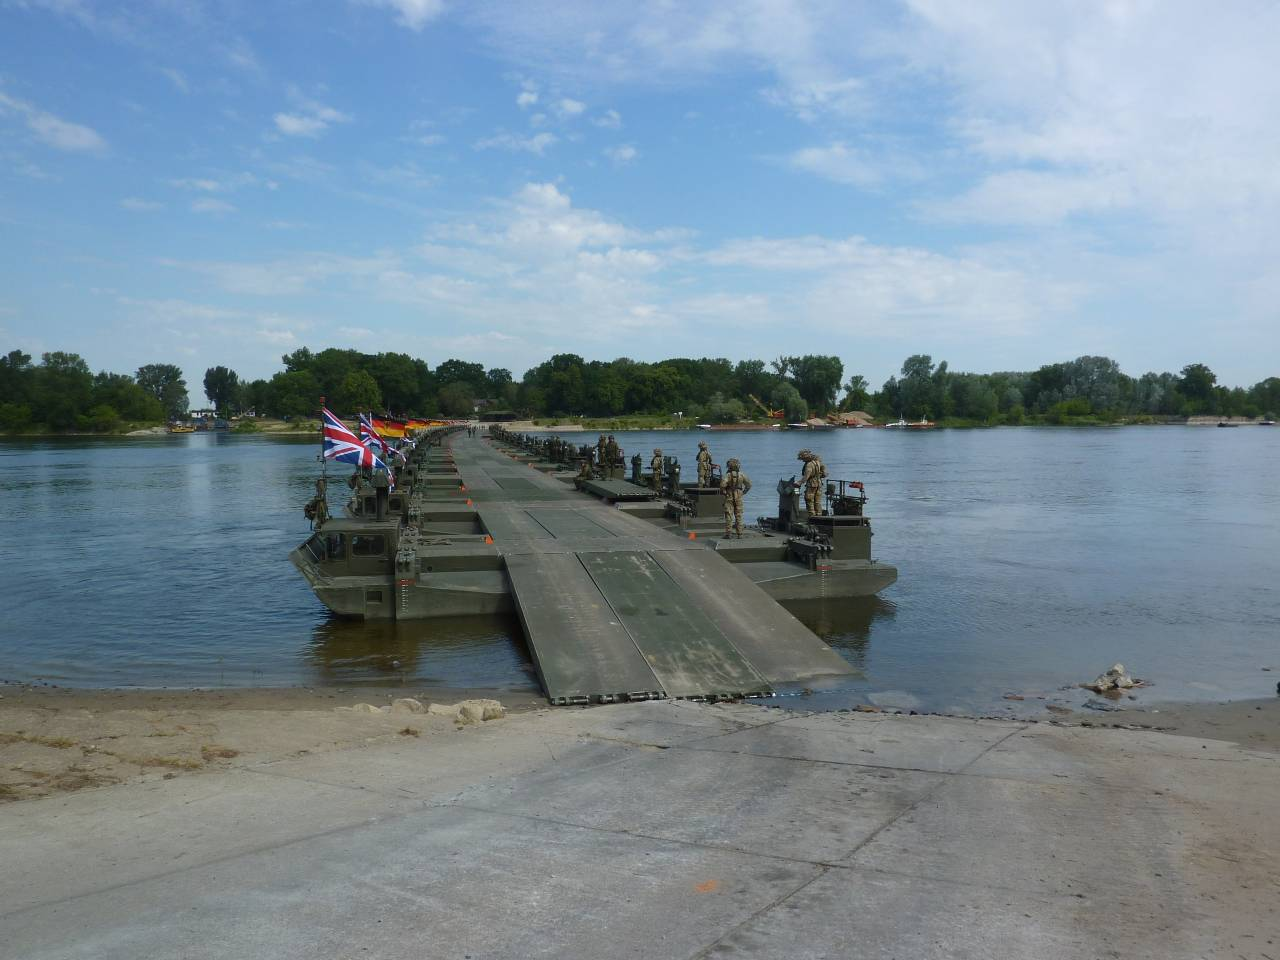 River crossing during Exercise Anaconda 2016. Source: General Dynamics European Land Systems.